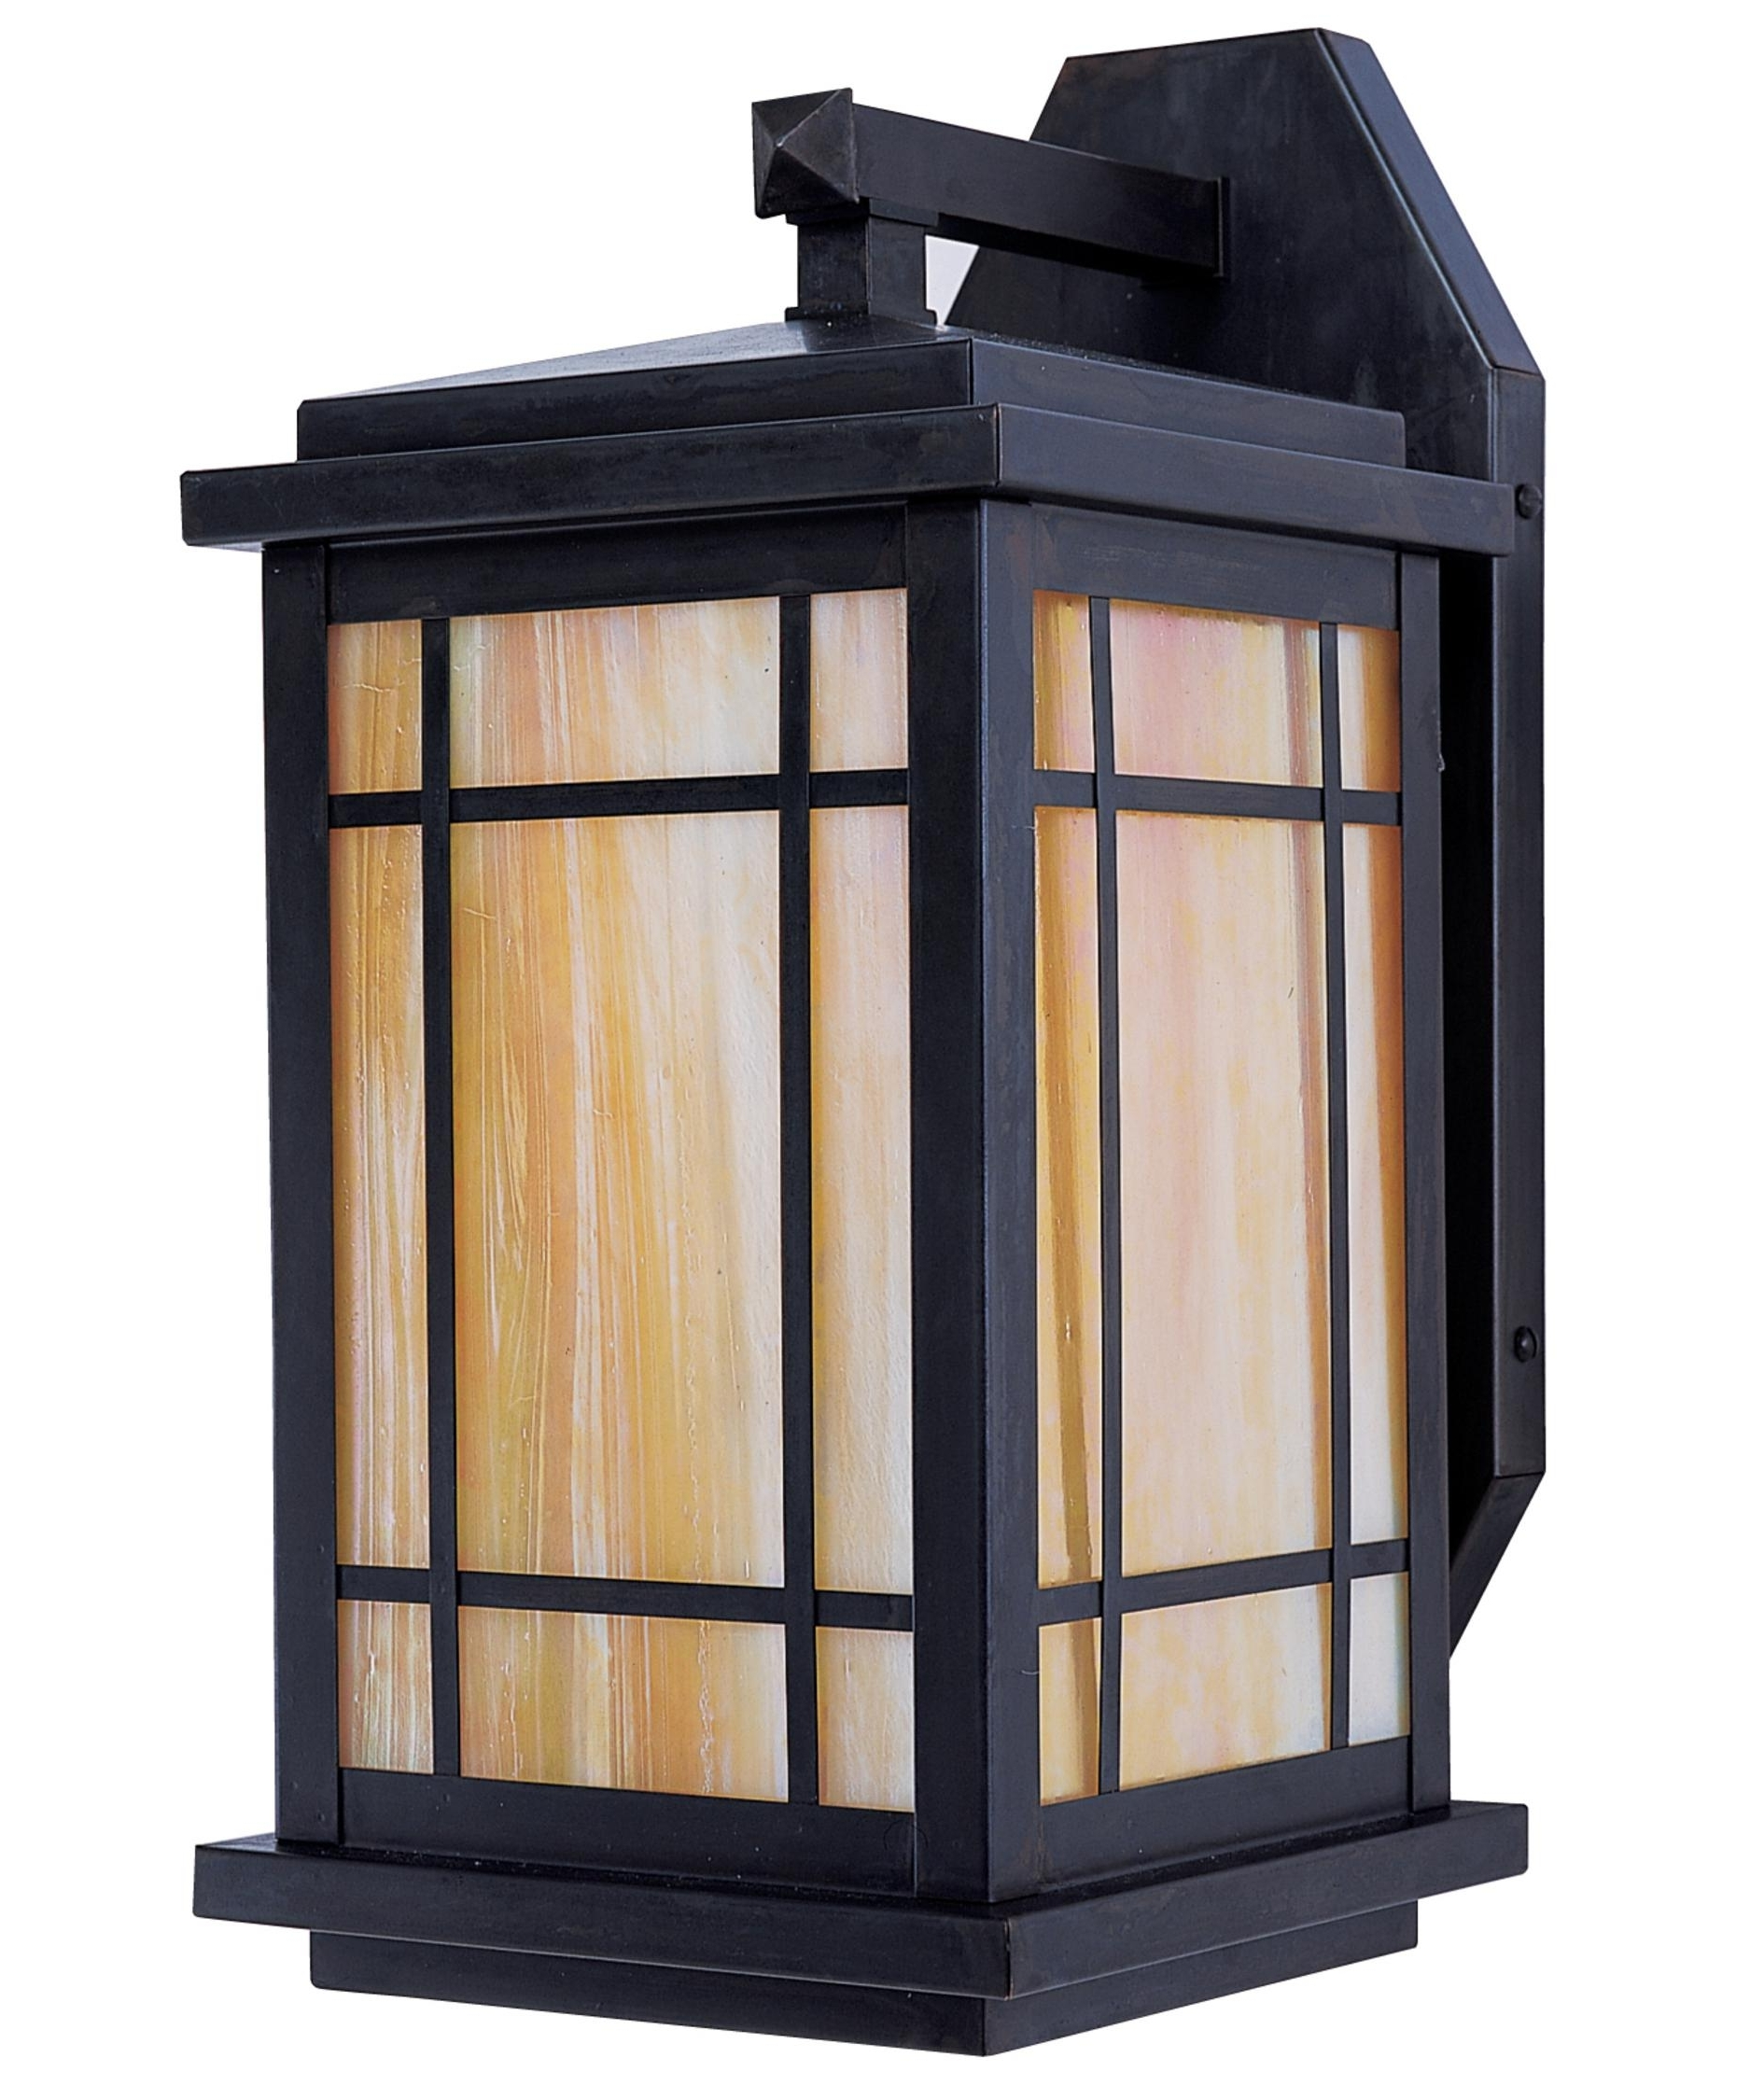 Most Up To Date Craftsman Outdoor Wall Lighting With Regard To Arroyo Craftsman Avb 8 Avenue 8 Inch Wide 1 Light Outdoor Wall Light (View 18 of 20)